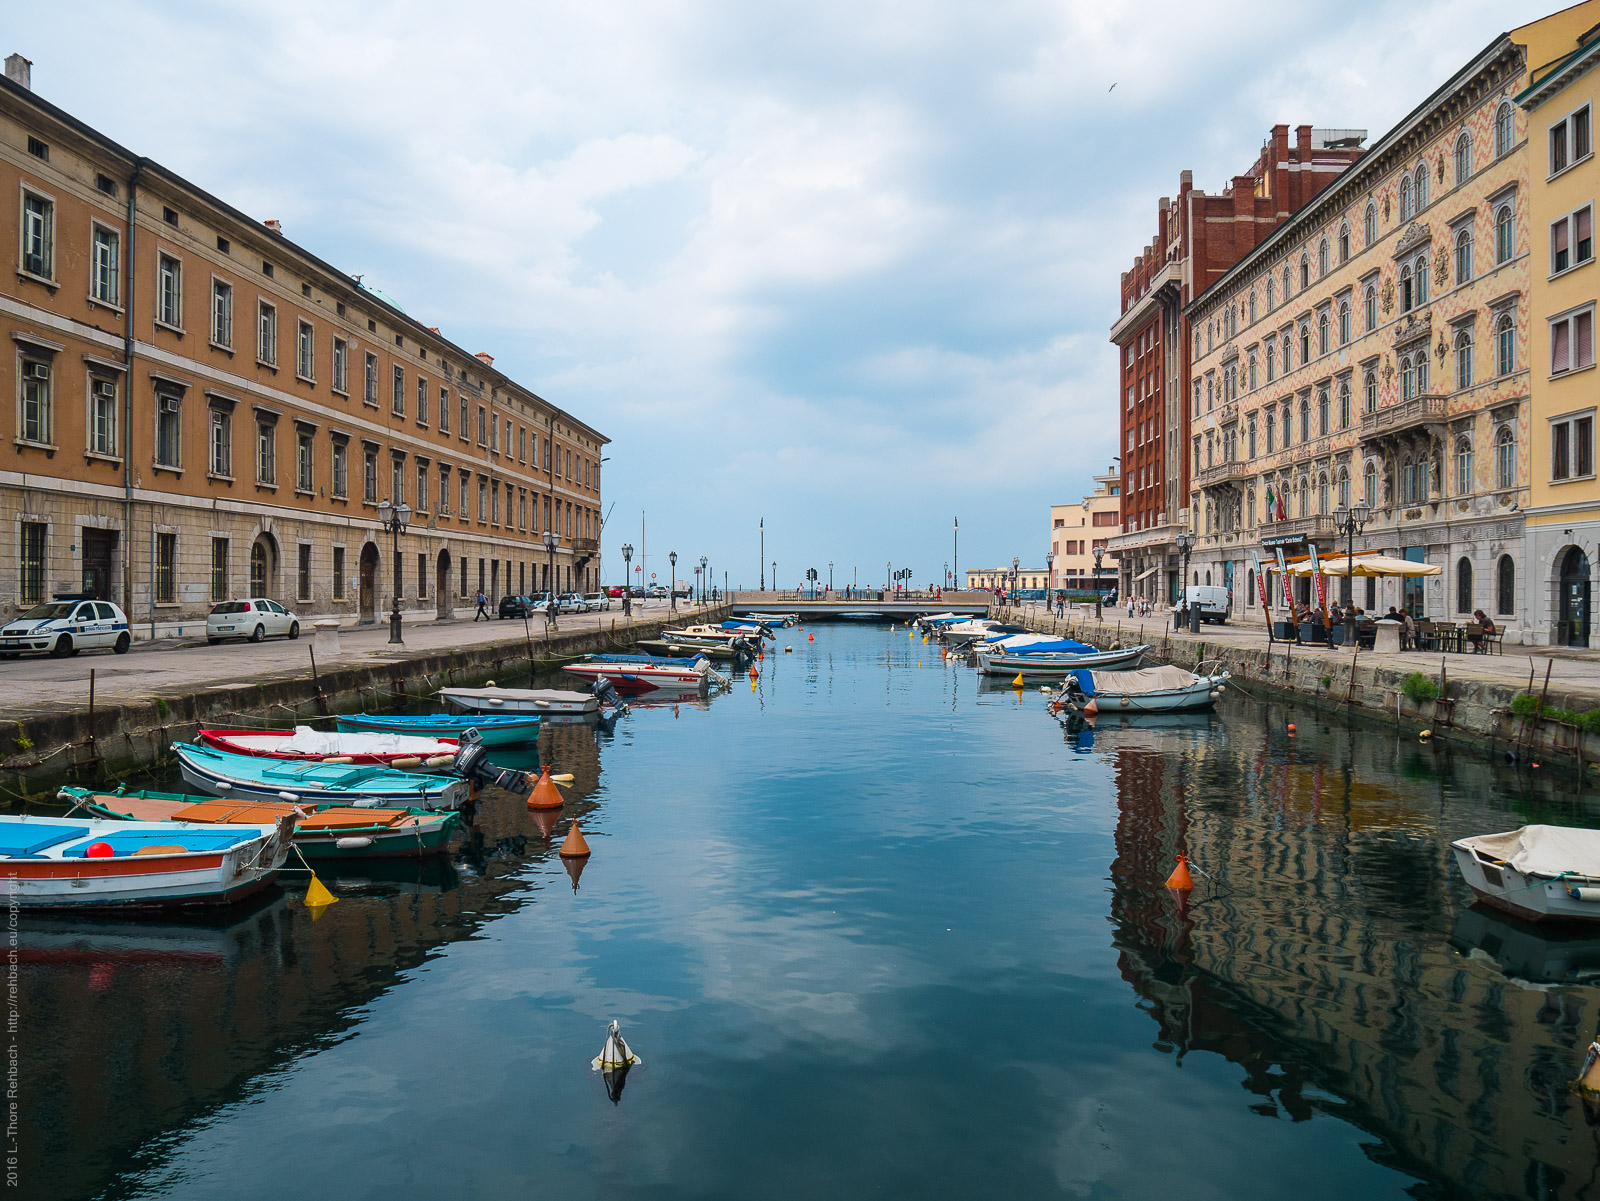 Canal Grande in Trieste with small boats and pedestrian bridge.